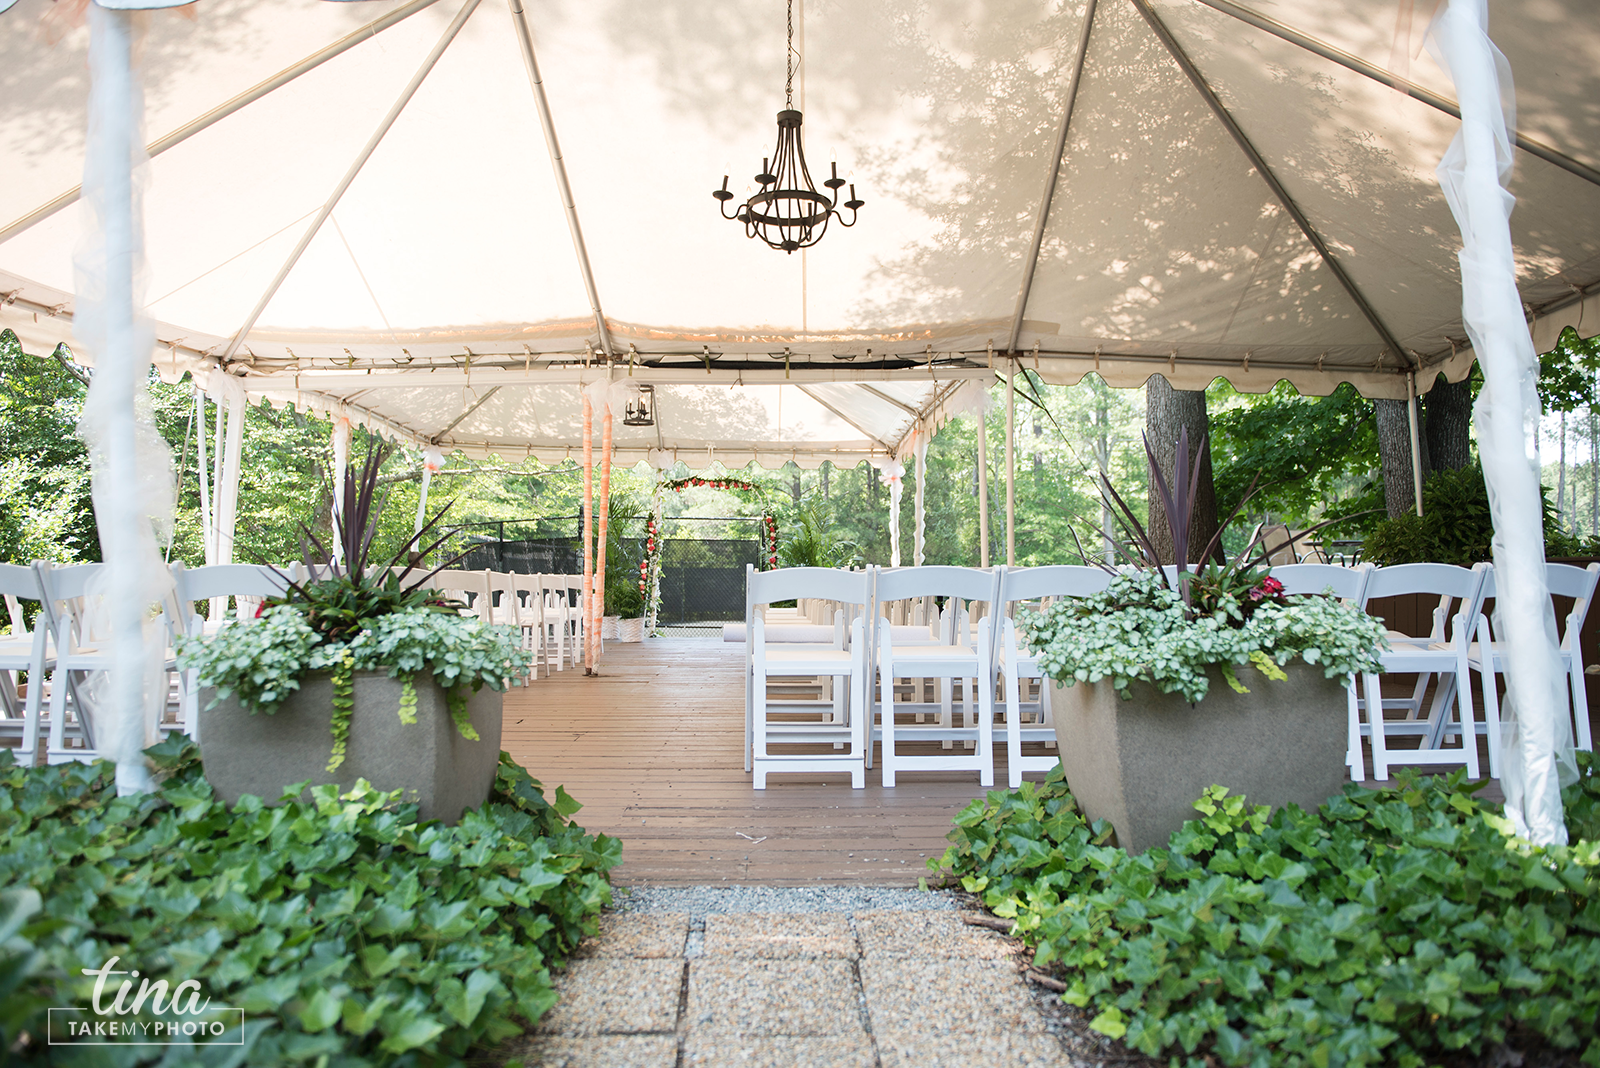 wedding-photographer-ceremony-tent-roses-summer-brandermill-country-club-virginia-1